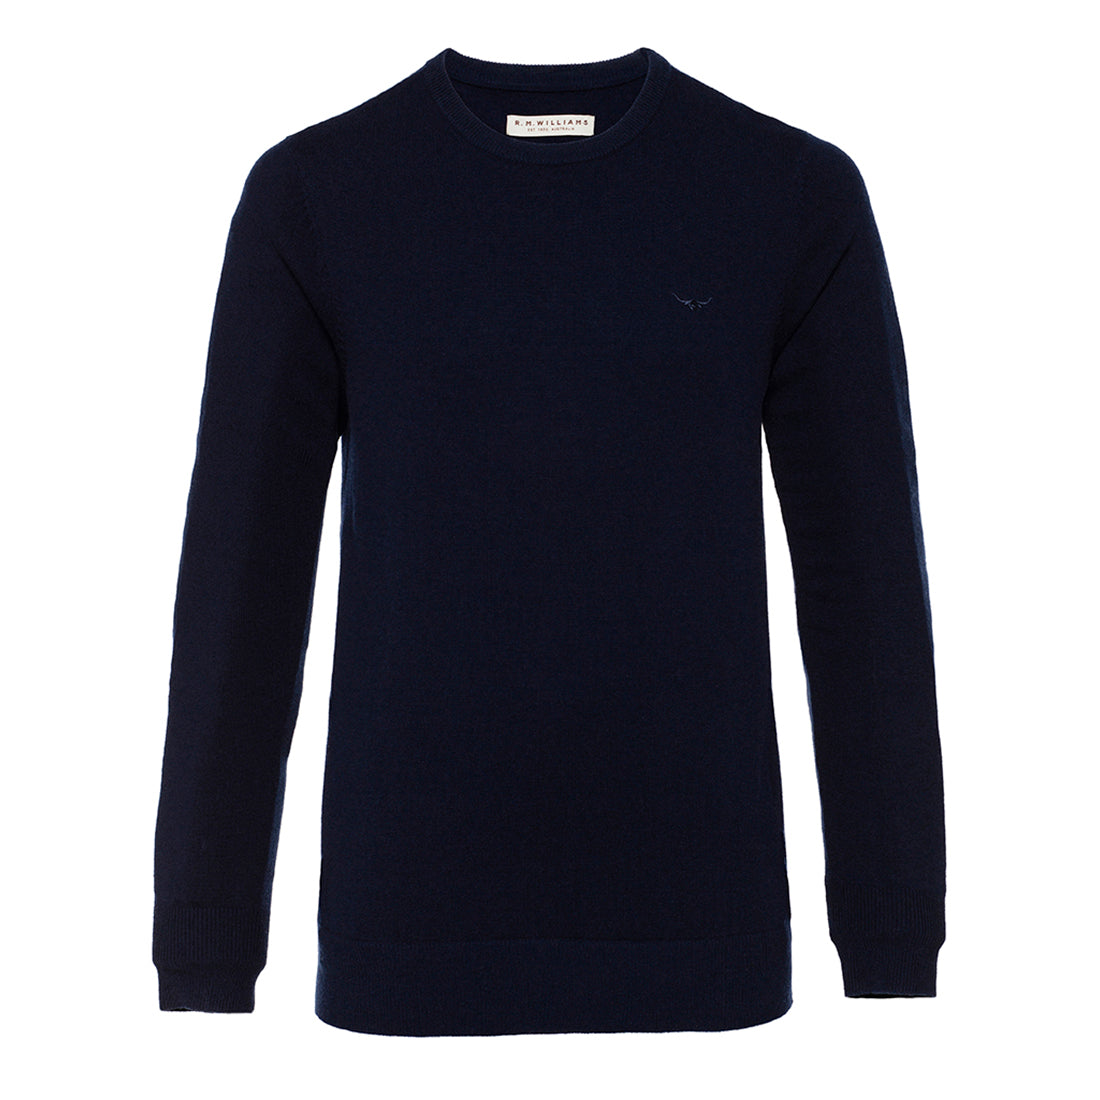 R.M.Williams Howe Sweater Navy